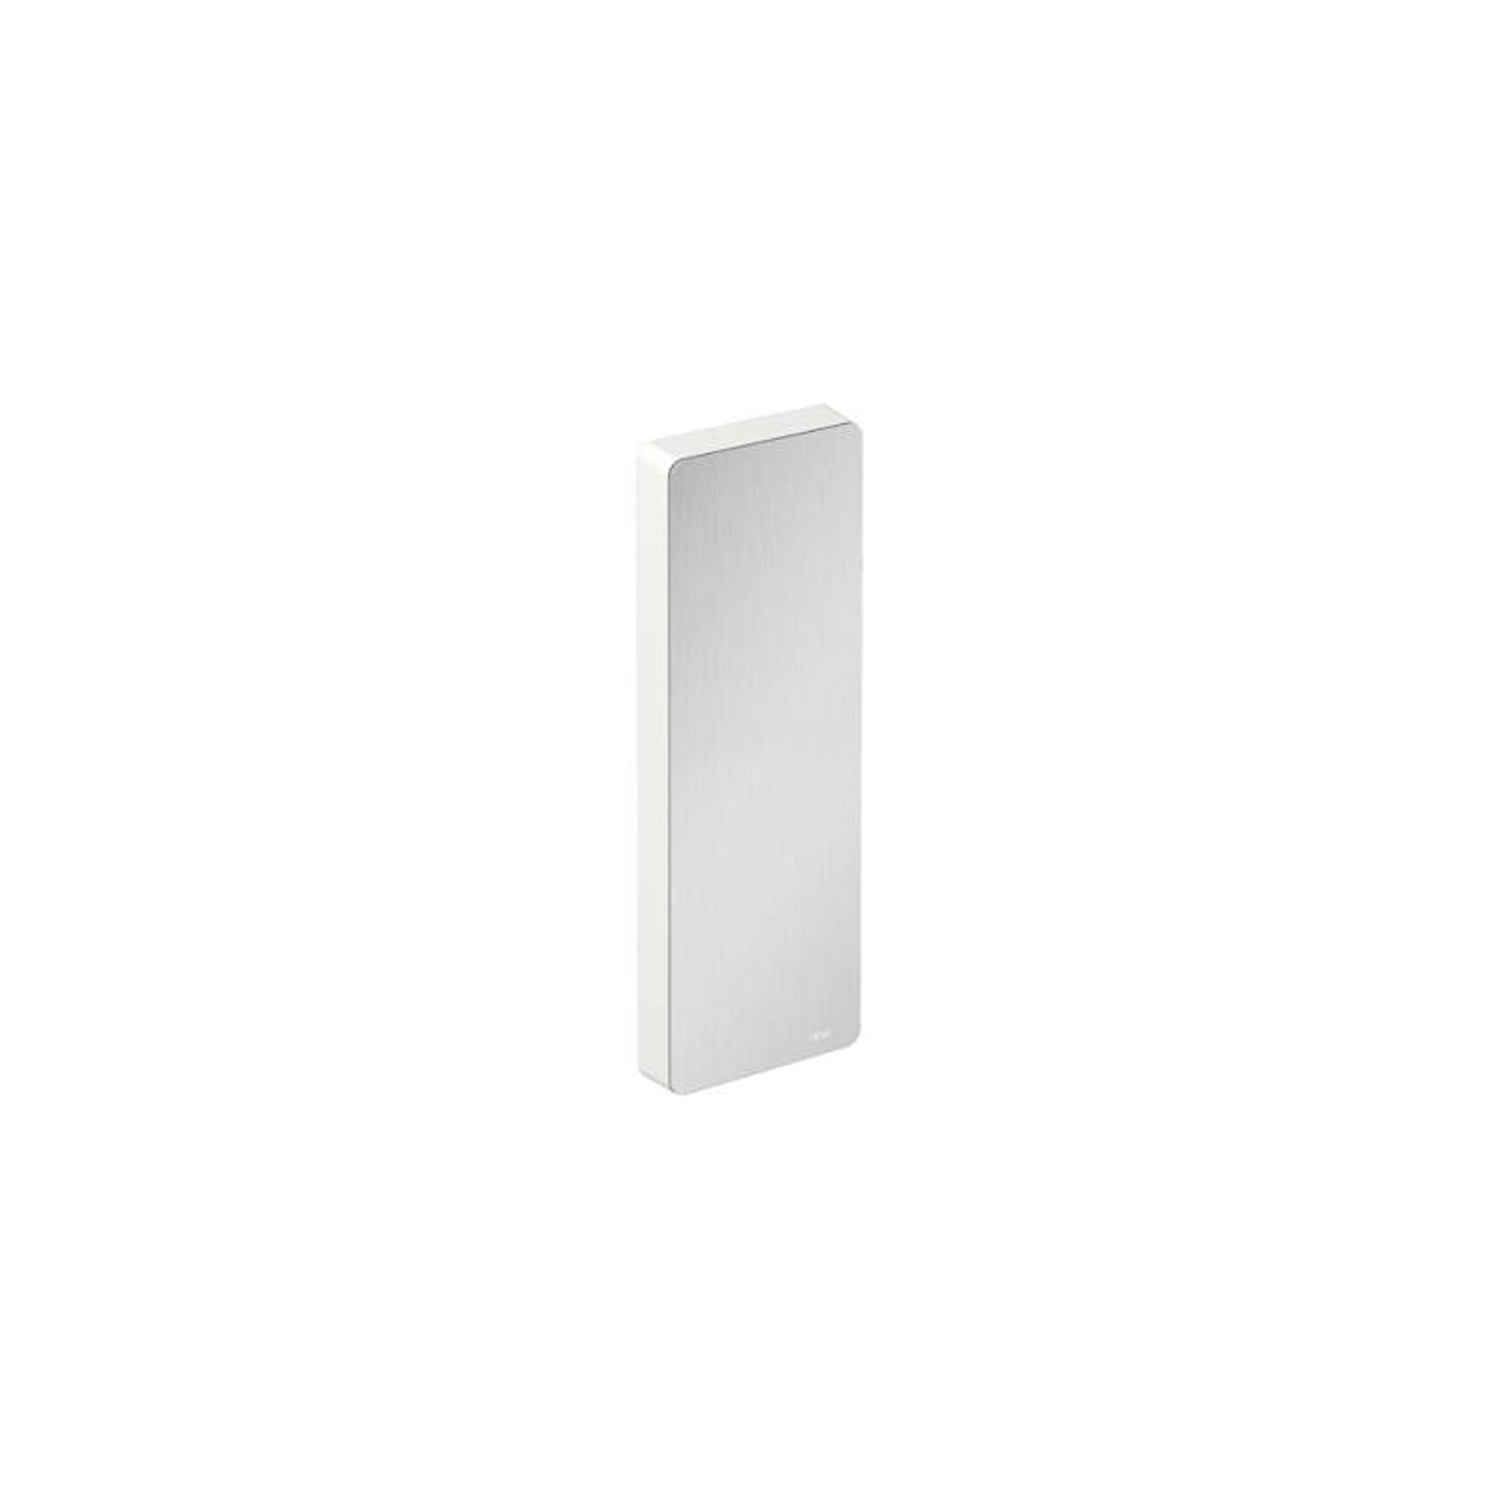 Freestyle Removable Hinged Grab Rail Cover with a satin steel finish on a white background